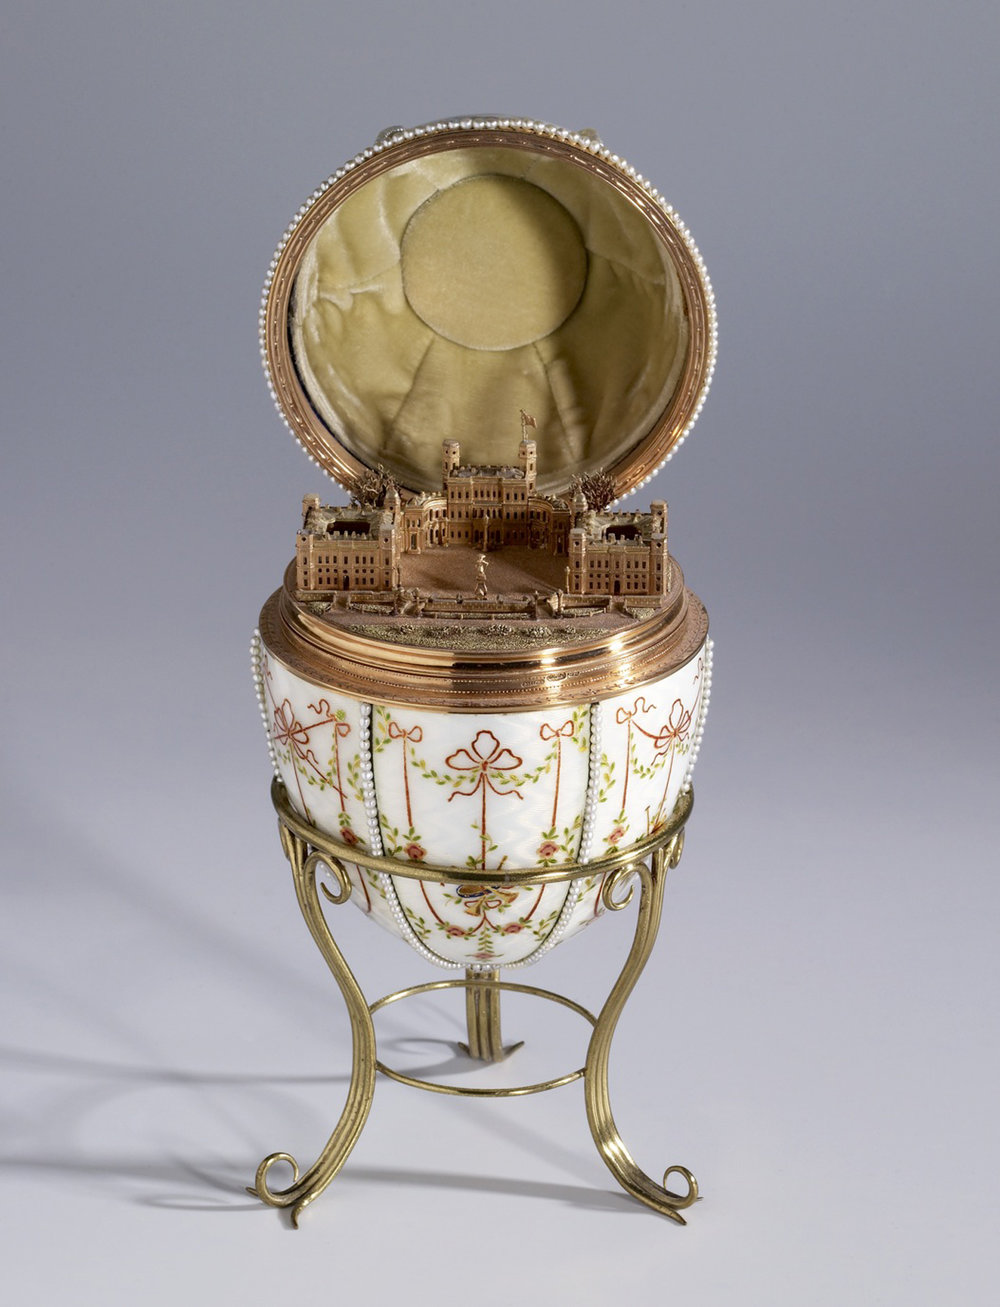 Gatchina Palace Egg, image from the Walters Art Museum. Made in 1901 for the Dowager Empress Maria Feodoronova, the egg contains a miniature model of Gatchina Palace—the Empress's residence outside Saint Petersburg—rendered in gold.